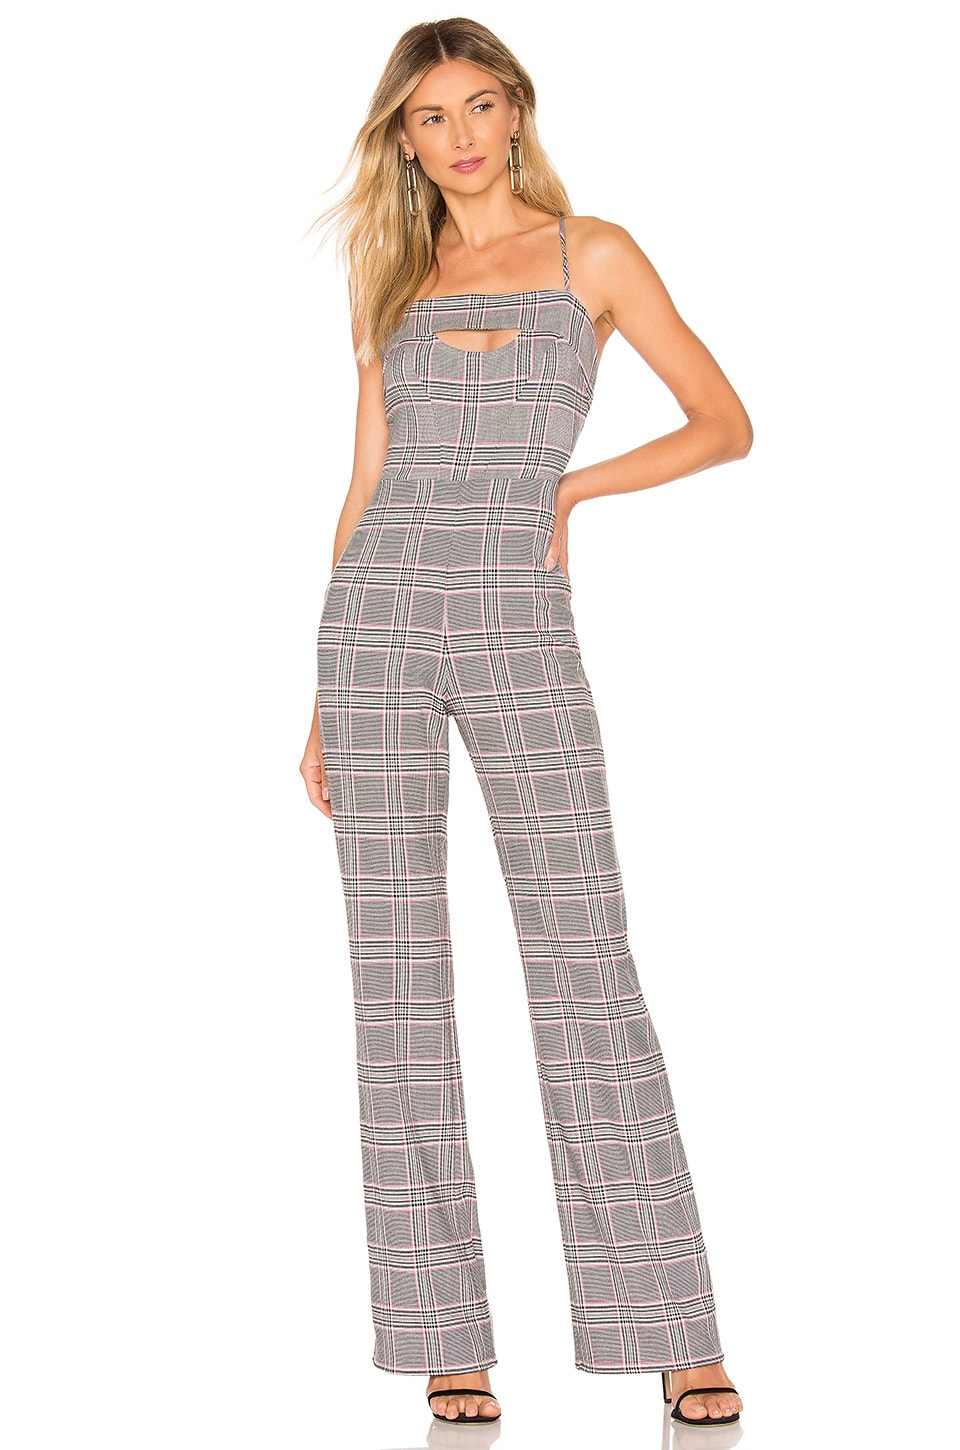 NBD x Naven Rose Jumpsuit in Gray Pink Plaid